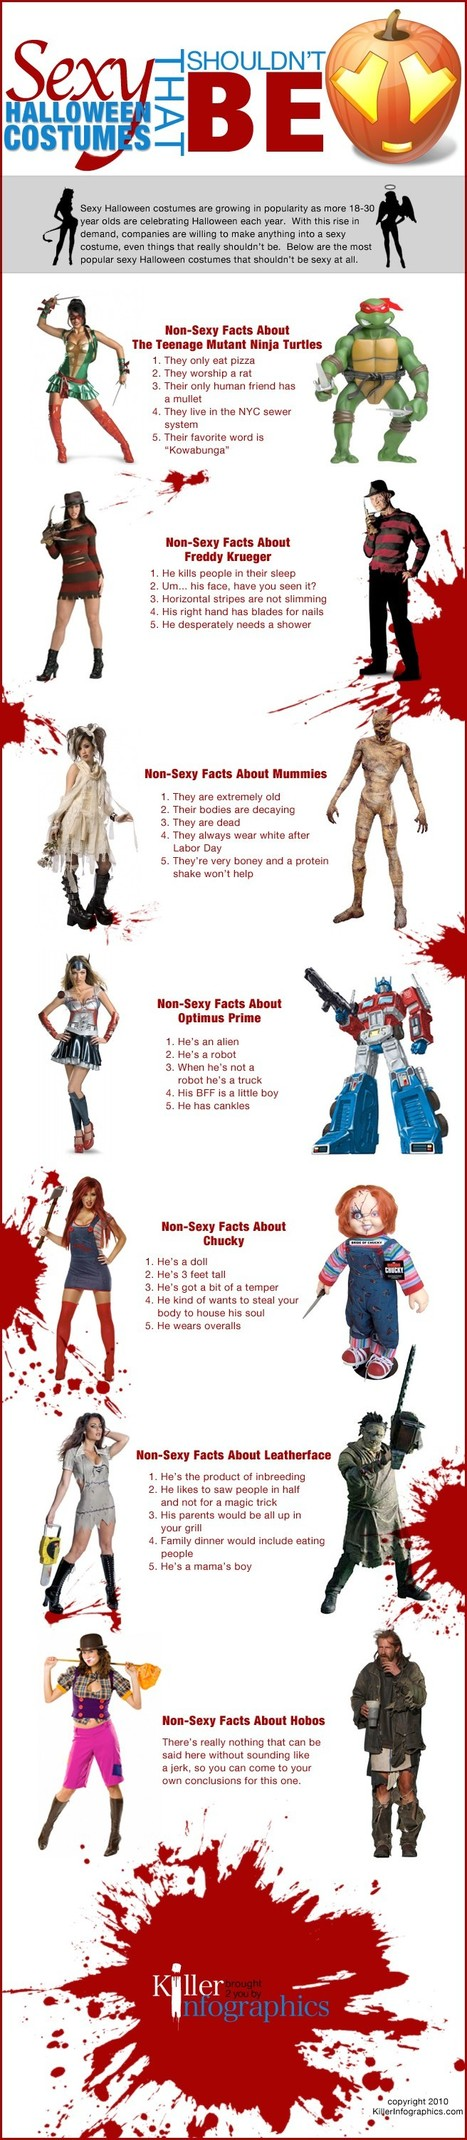 15 Sexy Halloween Costumes you Shouldn't Wear This Season | All Infographics | All Infographics | Scoop.it